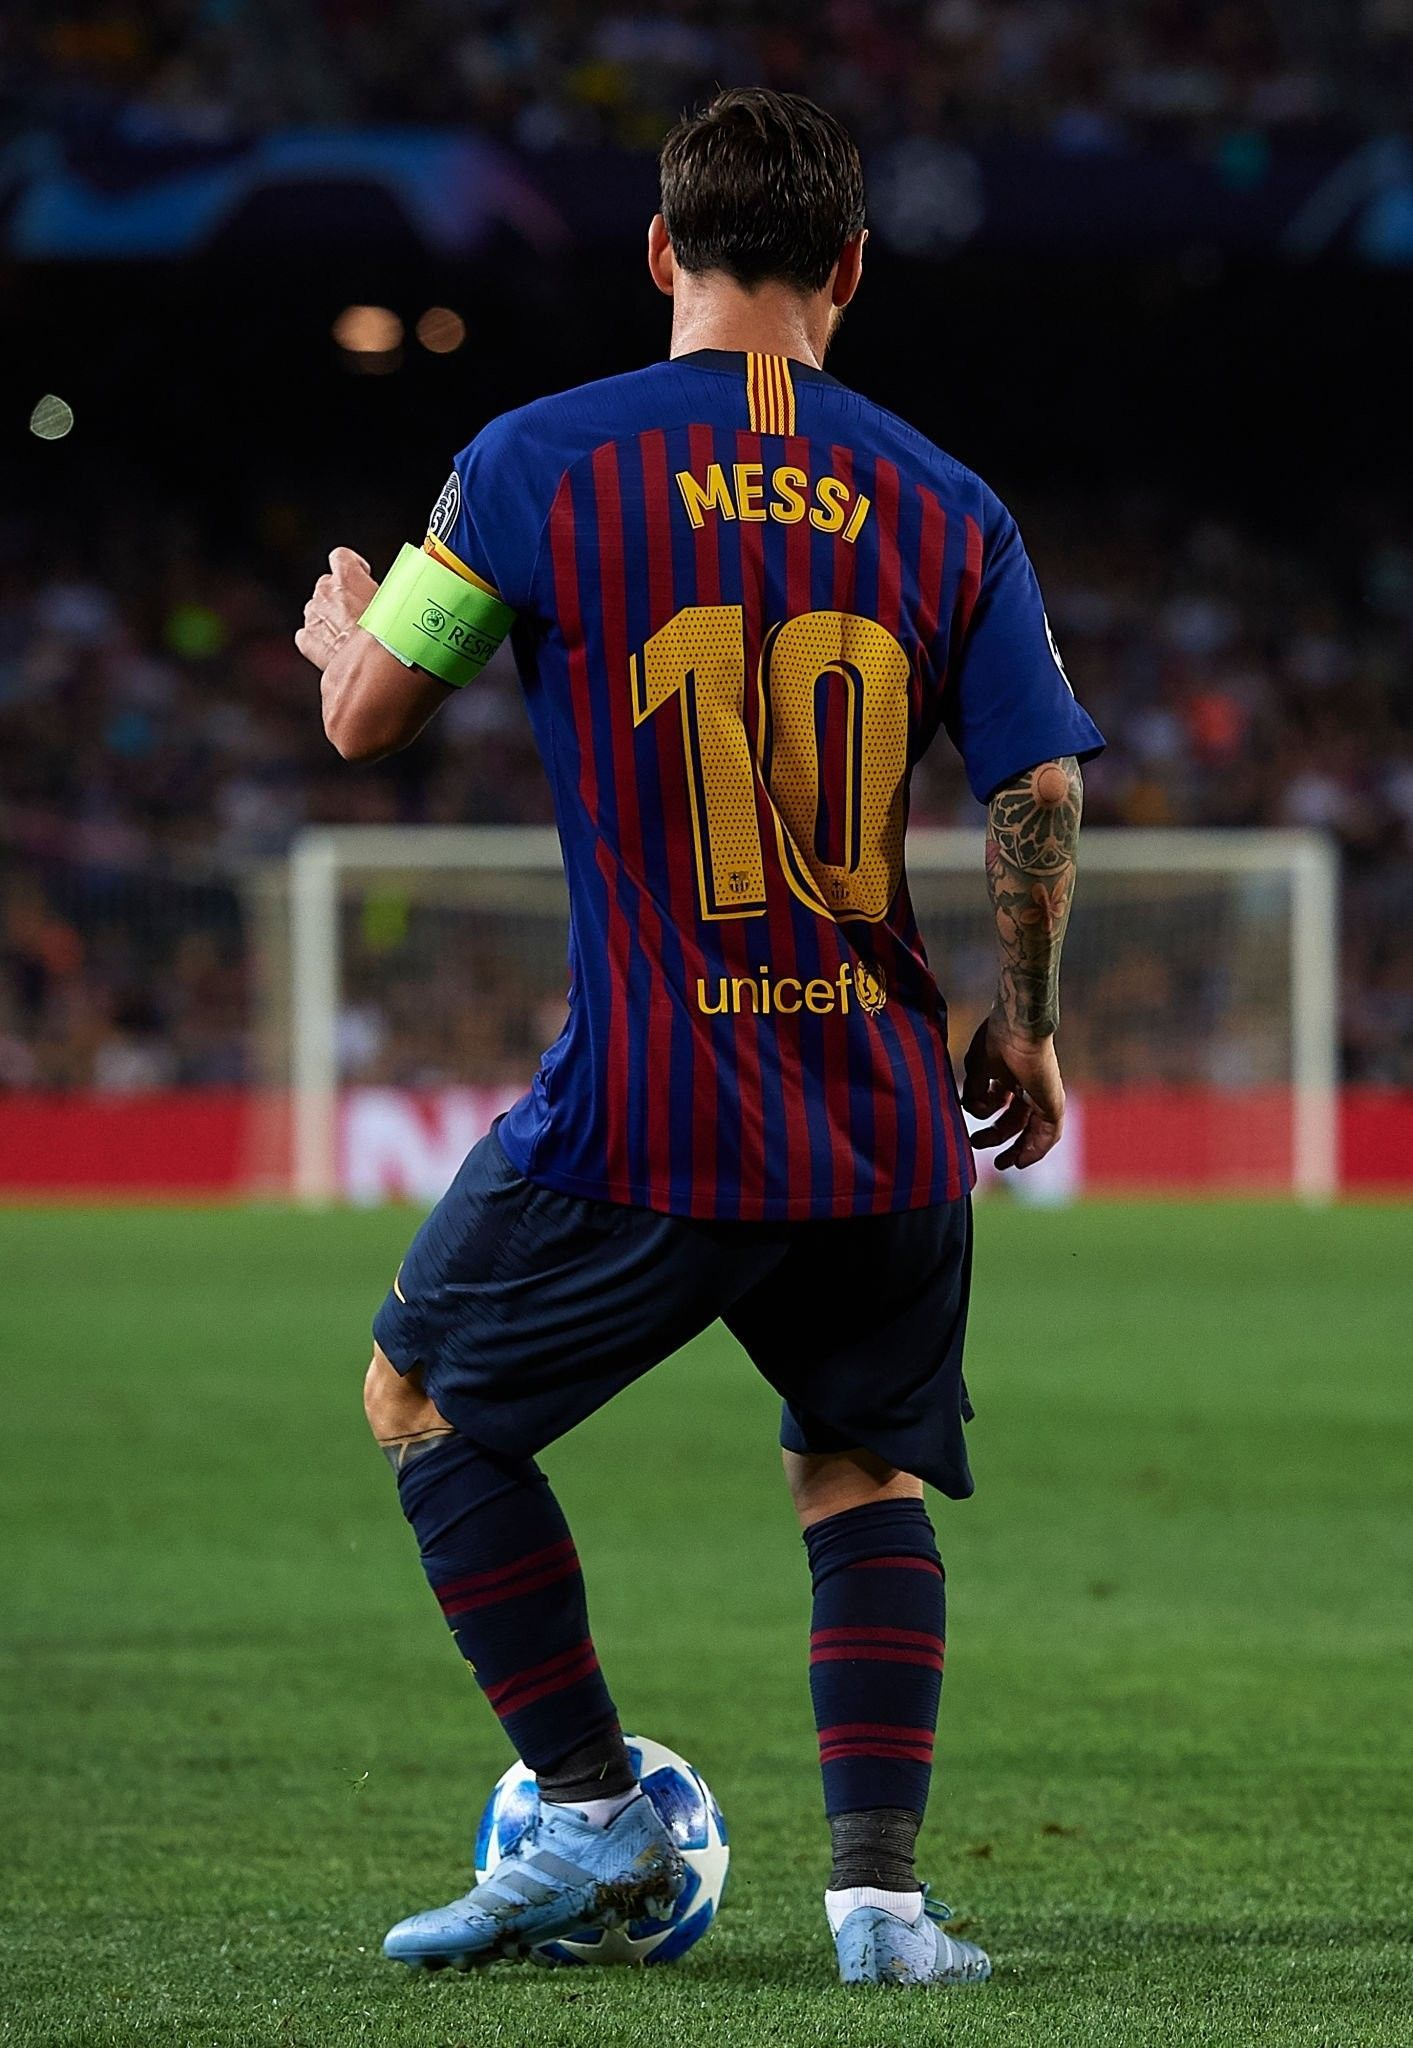 Pin by Soccerplayer on LM10 Lionel messi, Messi, Messi